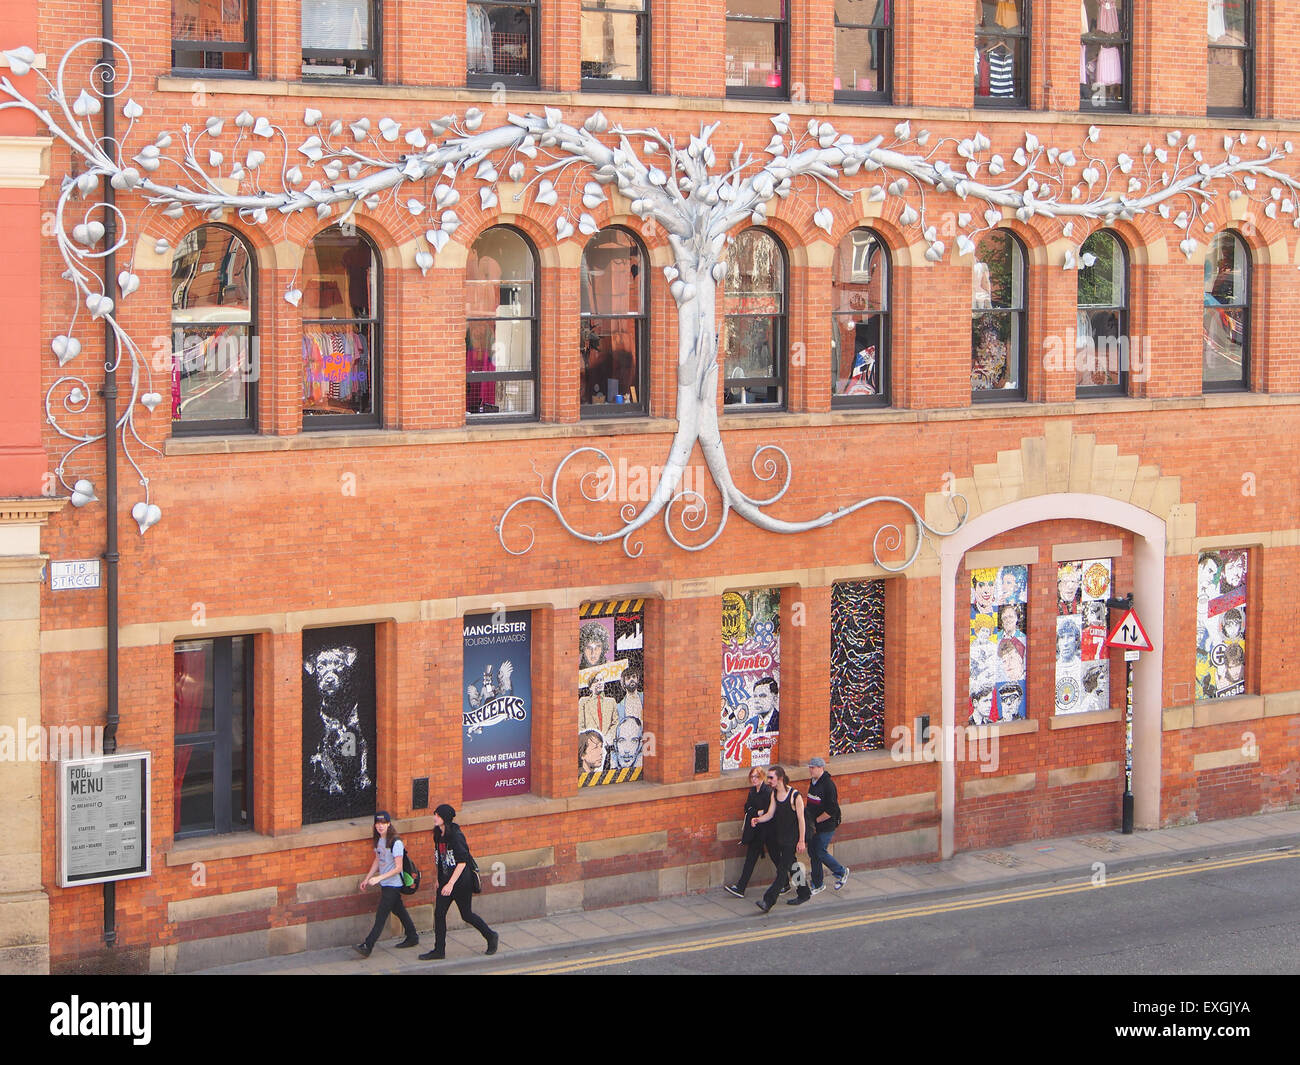 Tib Street elevation of Afflecks Palace indoor market with galvanised steel tree by David Hyde and mosaics by Mark - Stock Image